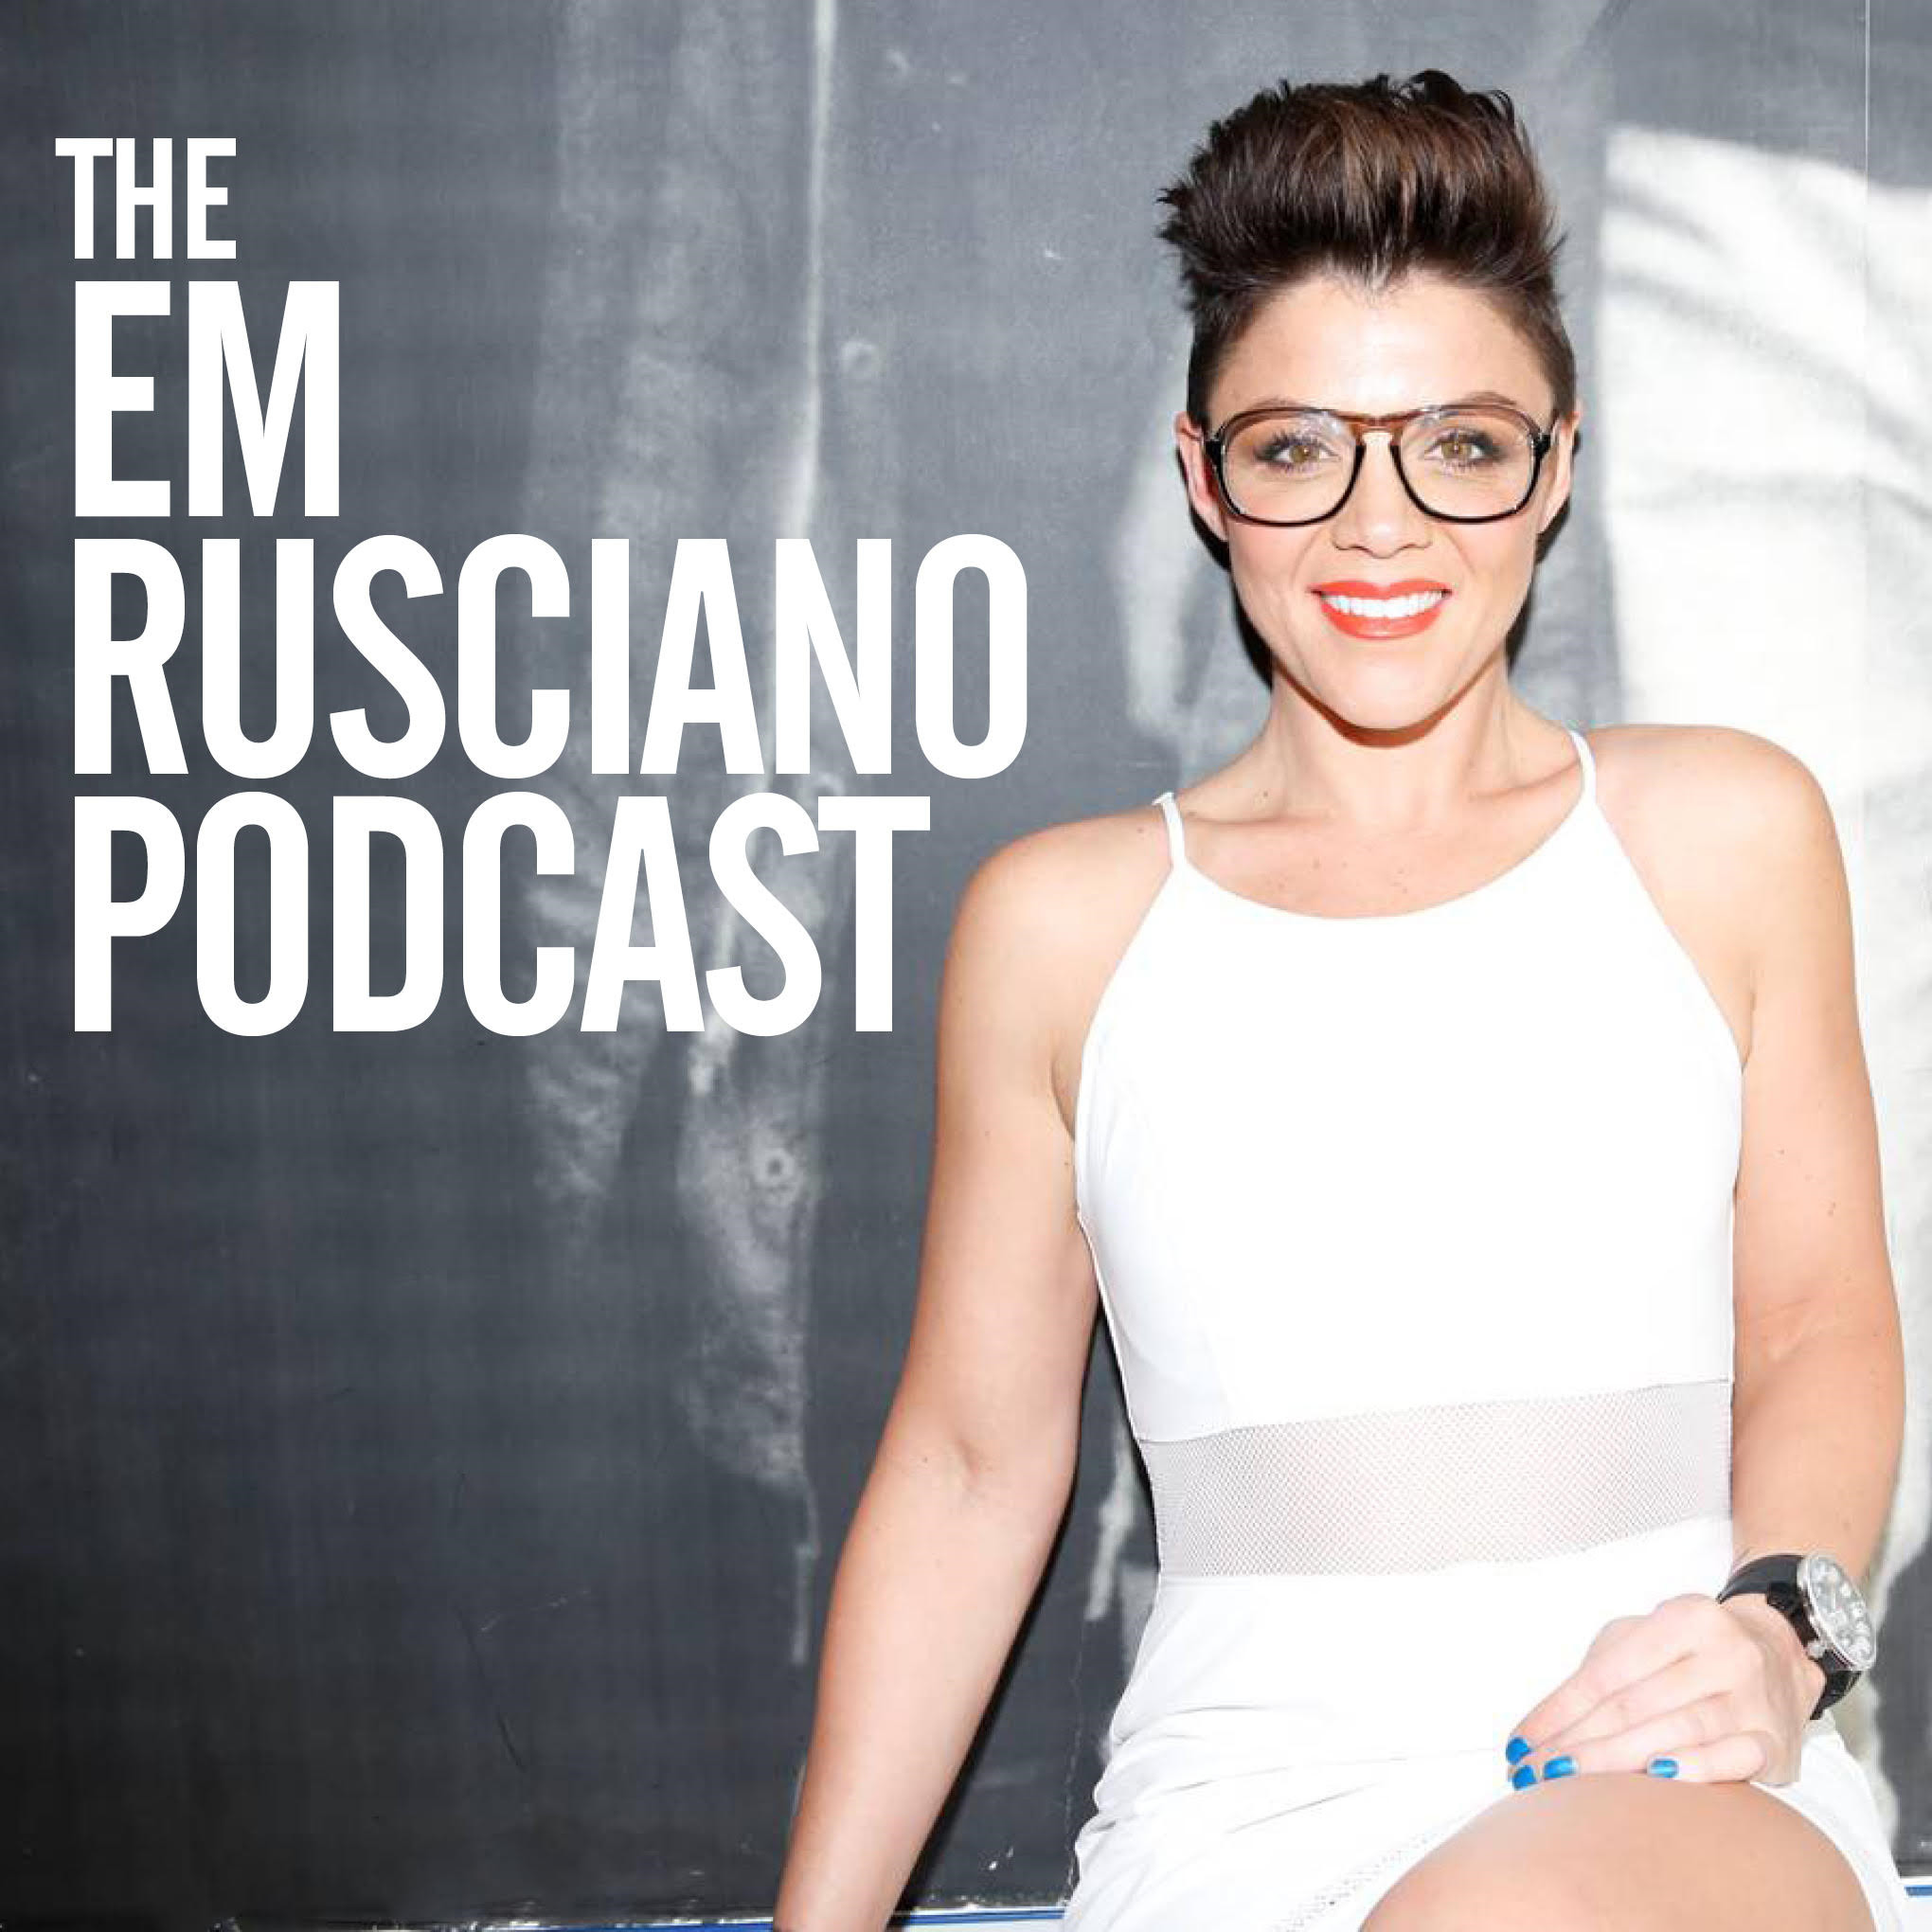 The Em Rusciano Podcast